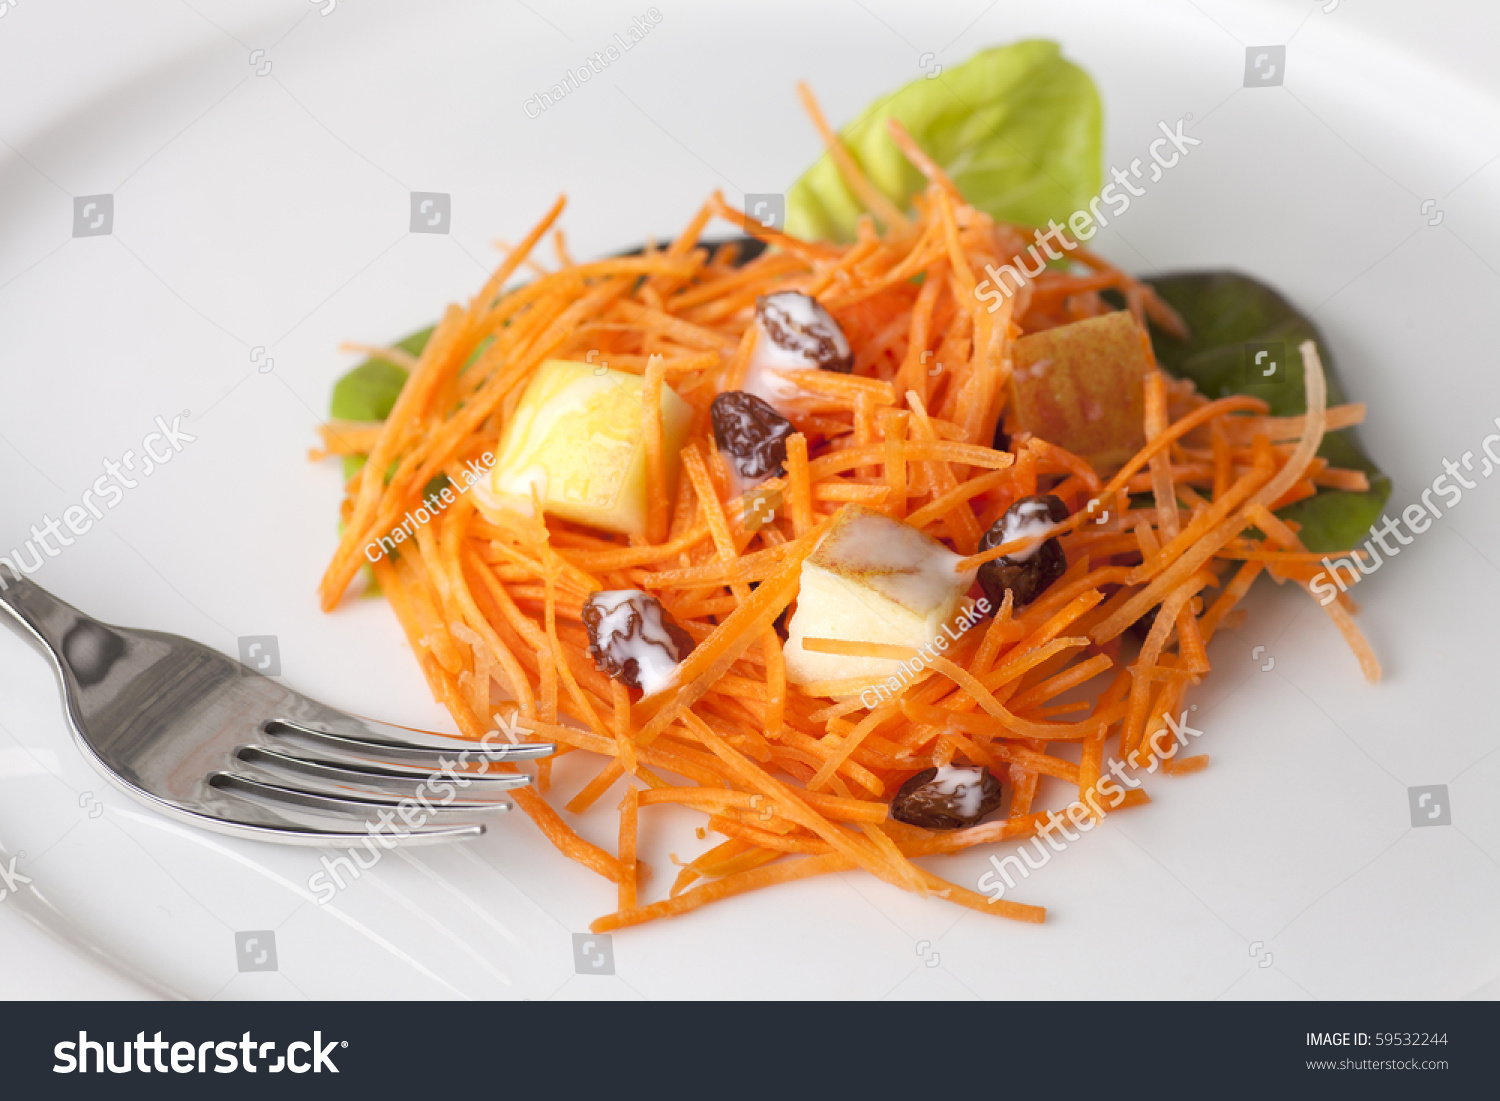 how to cook shredded carrots